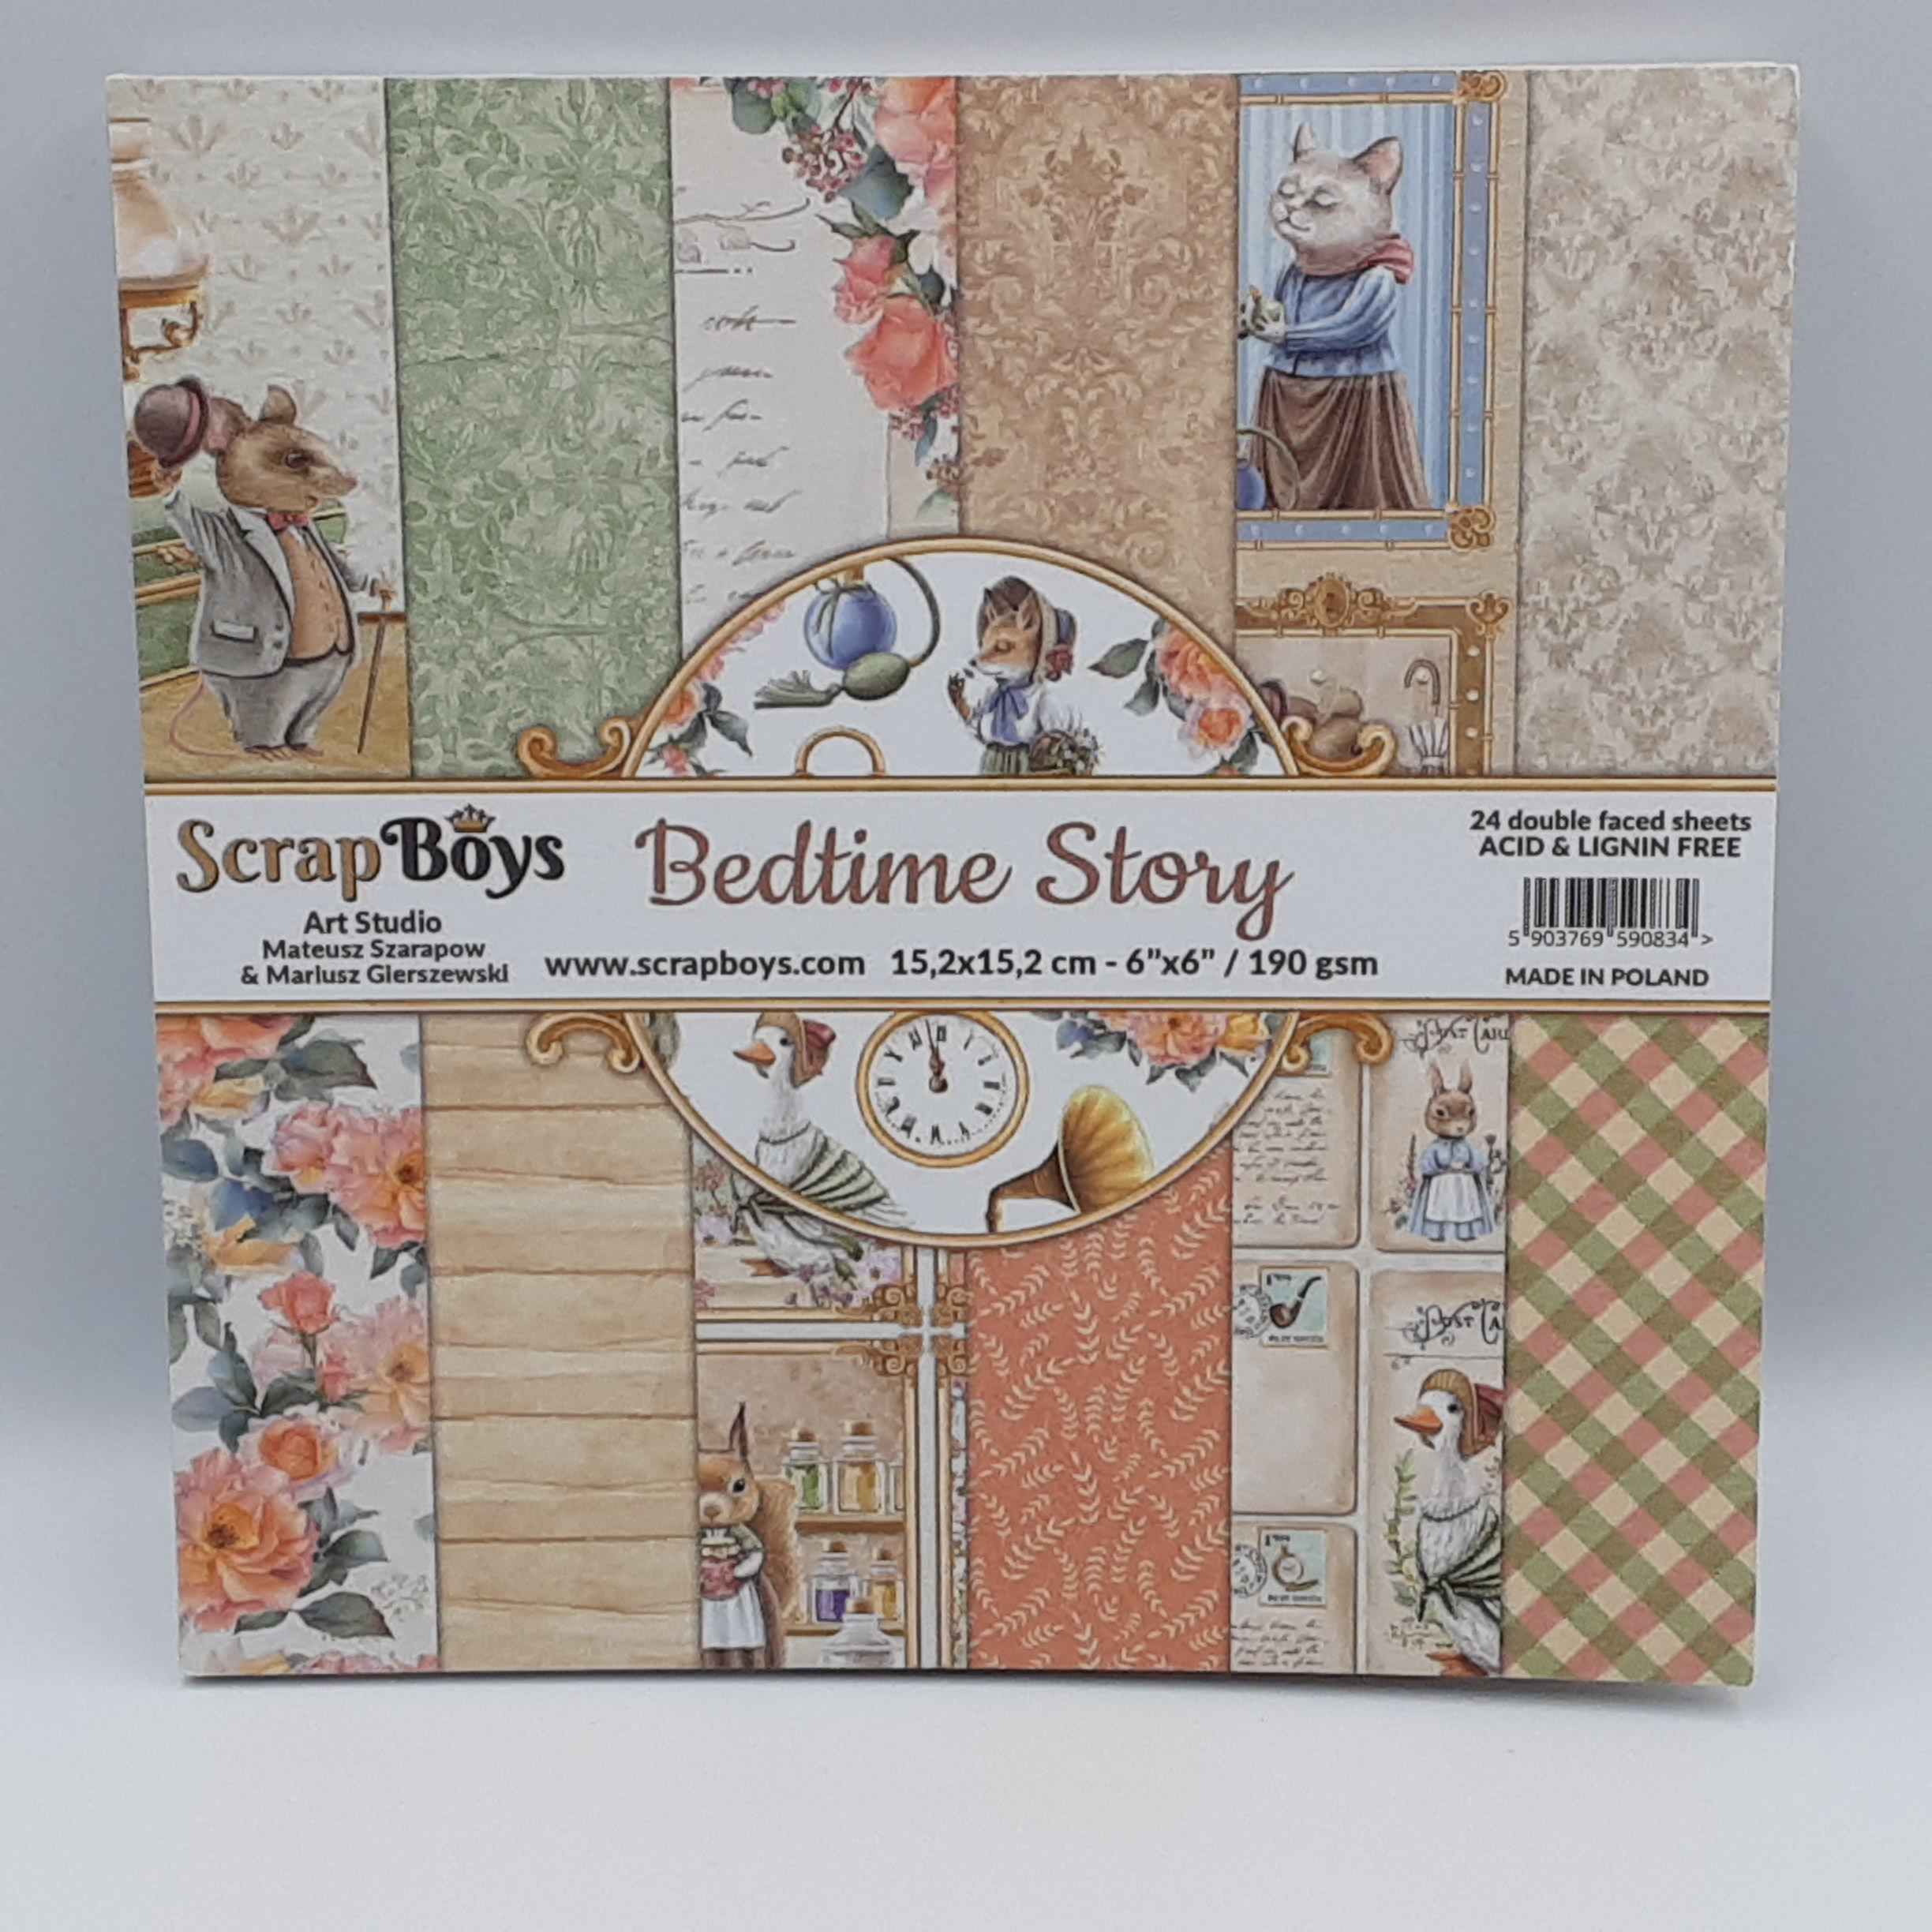 Bedtime story paperpad 6